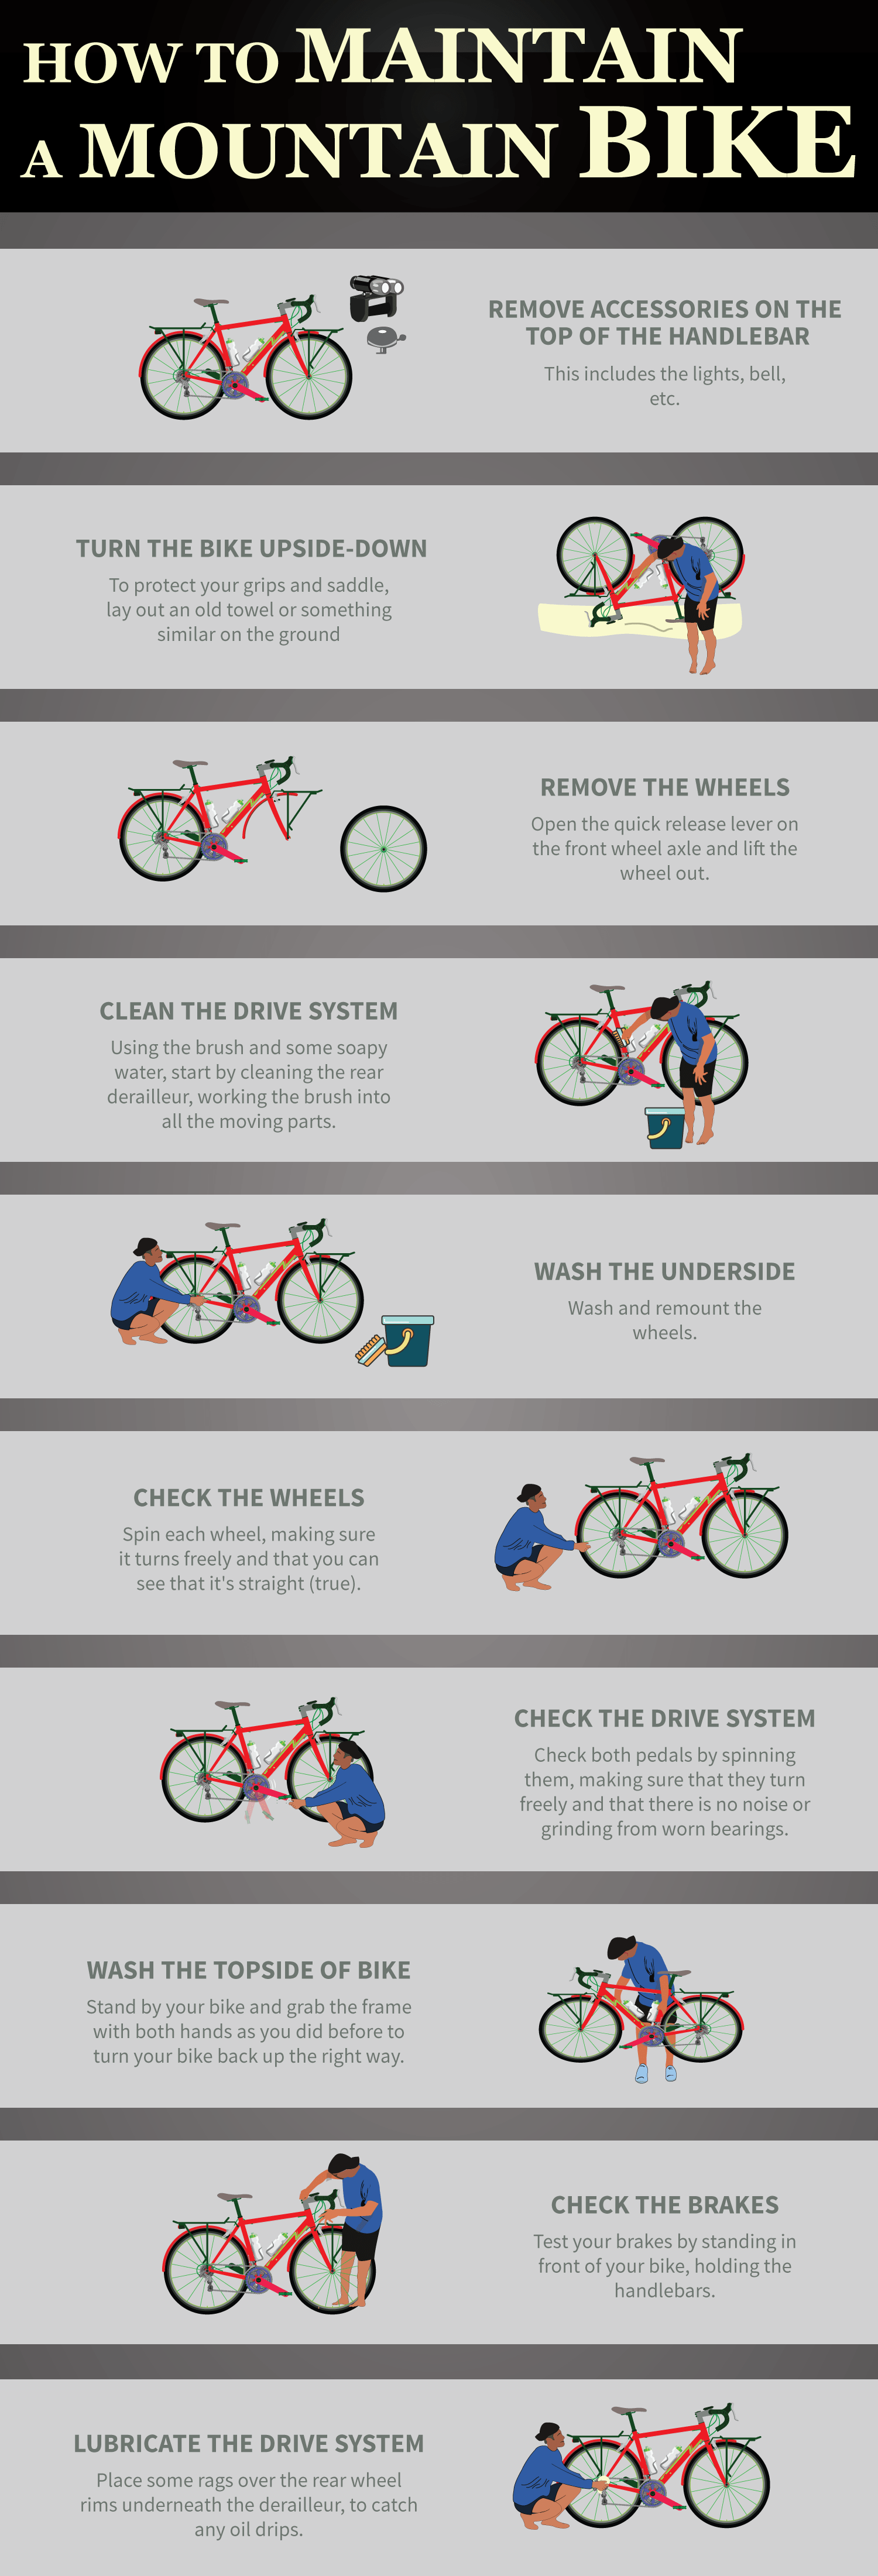 How to Maintain a Mountain Bike in 10 easy steps Infographic